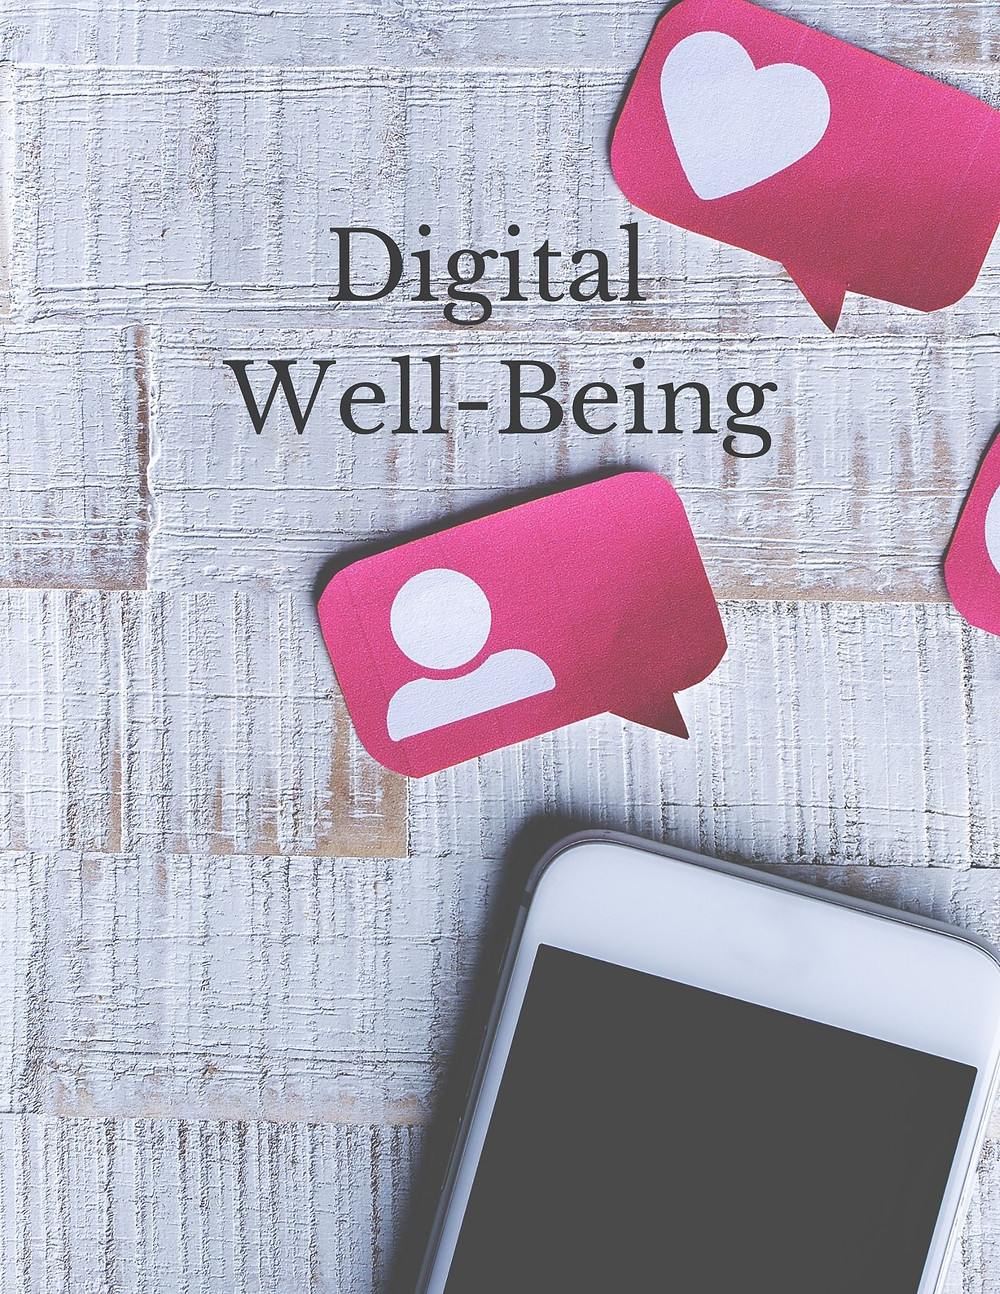 Digital Well-Being